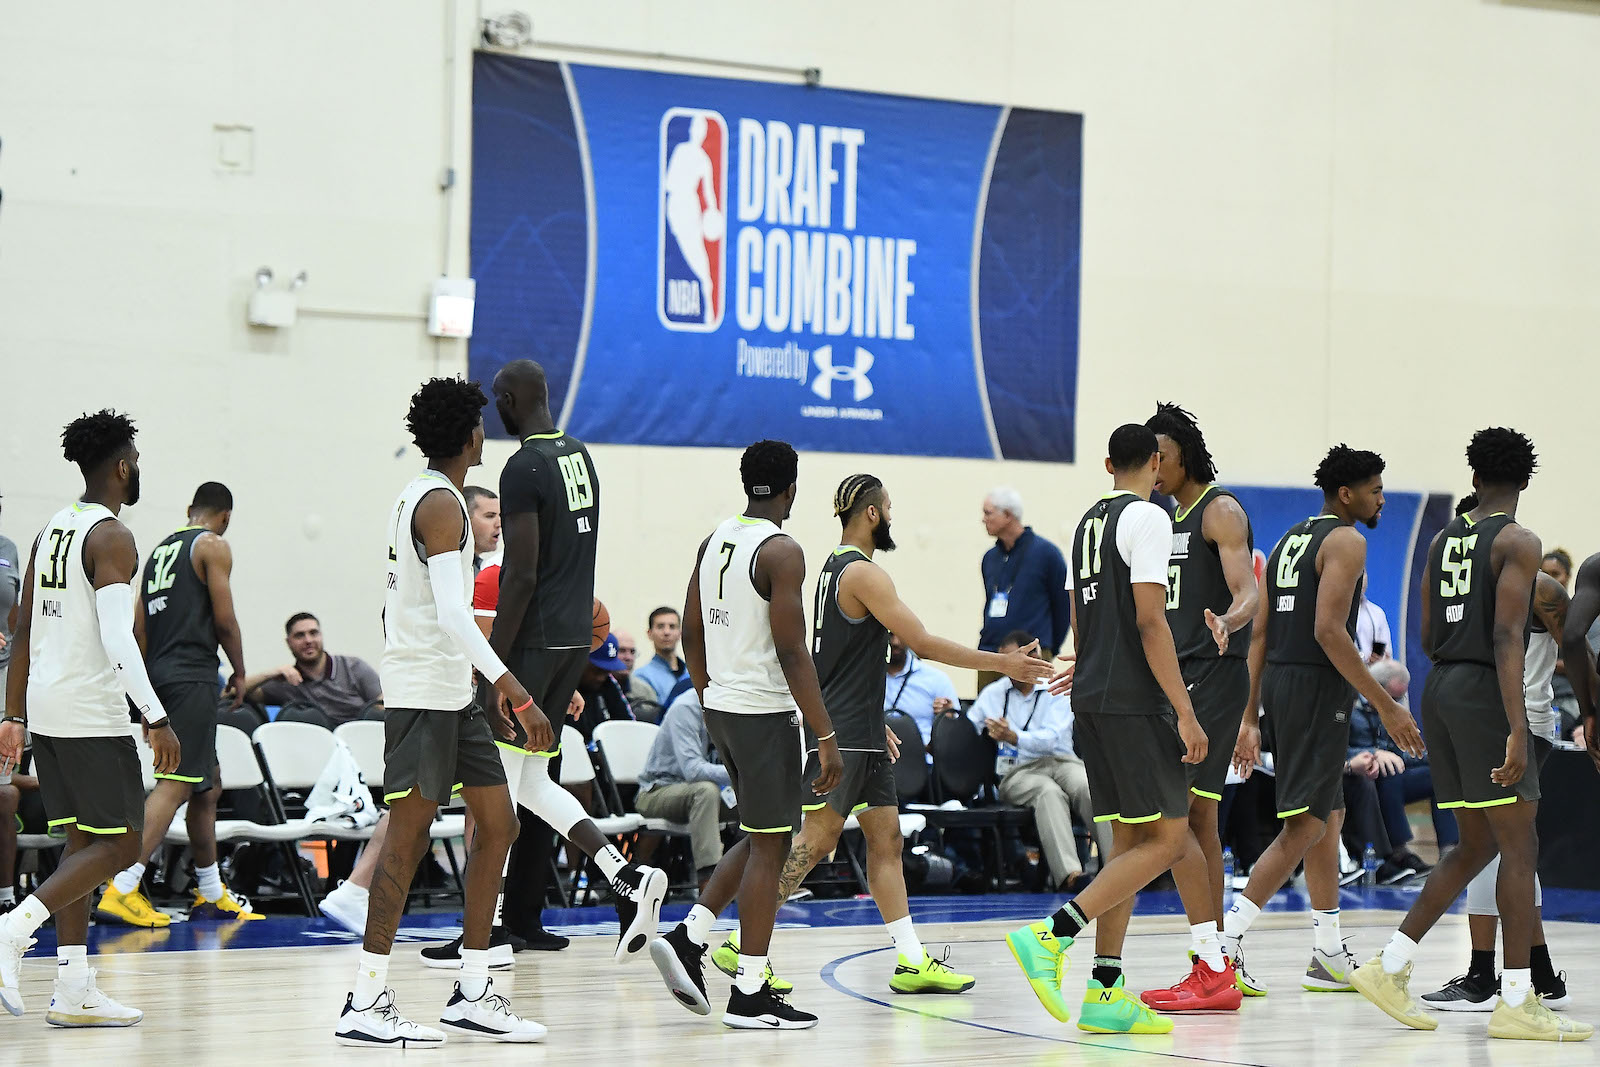 Players shake hands following a game during the NBA Draft Combine